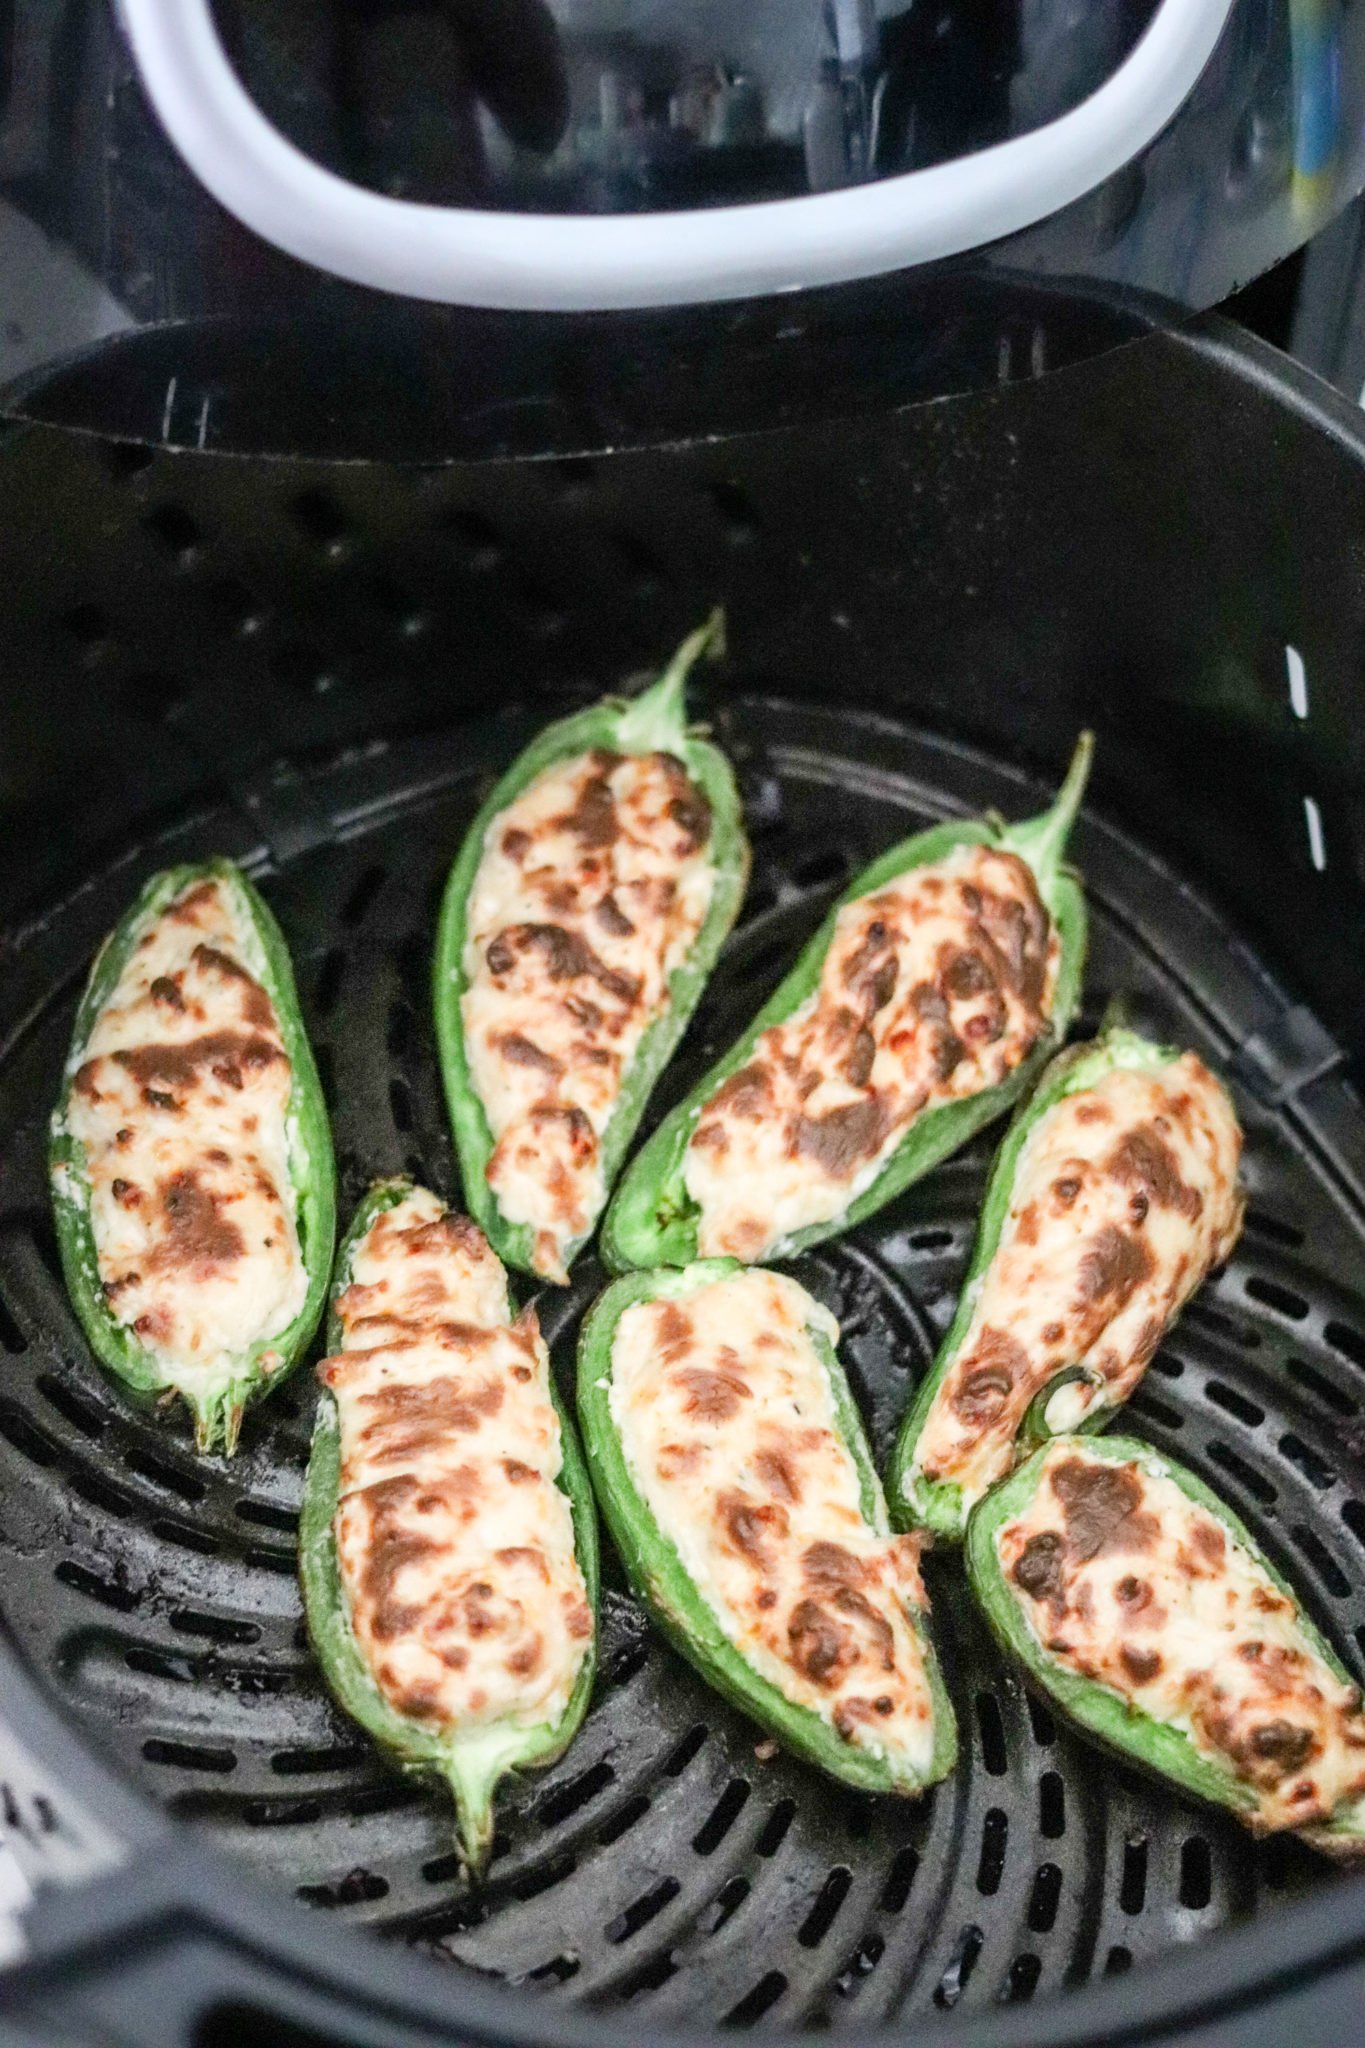 cooked jalapeno poppers in air fryer